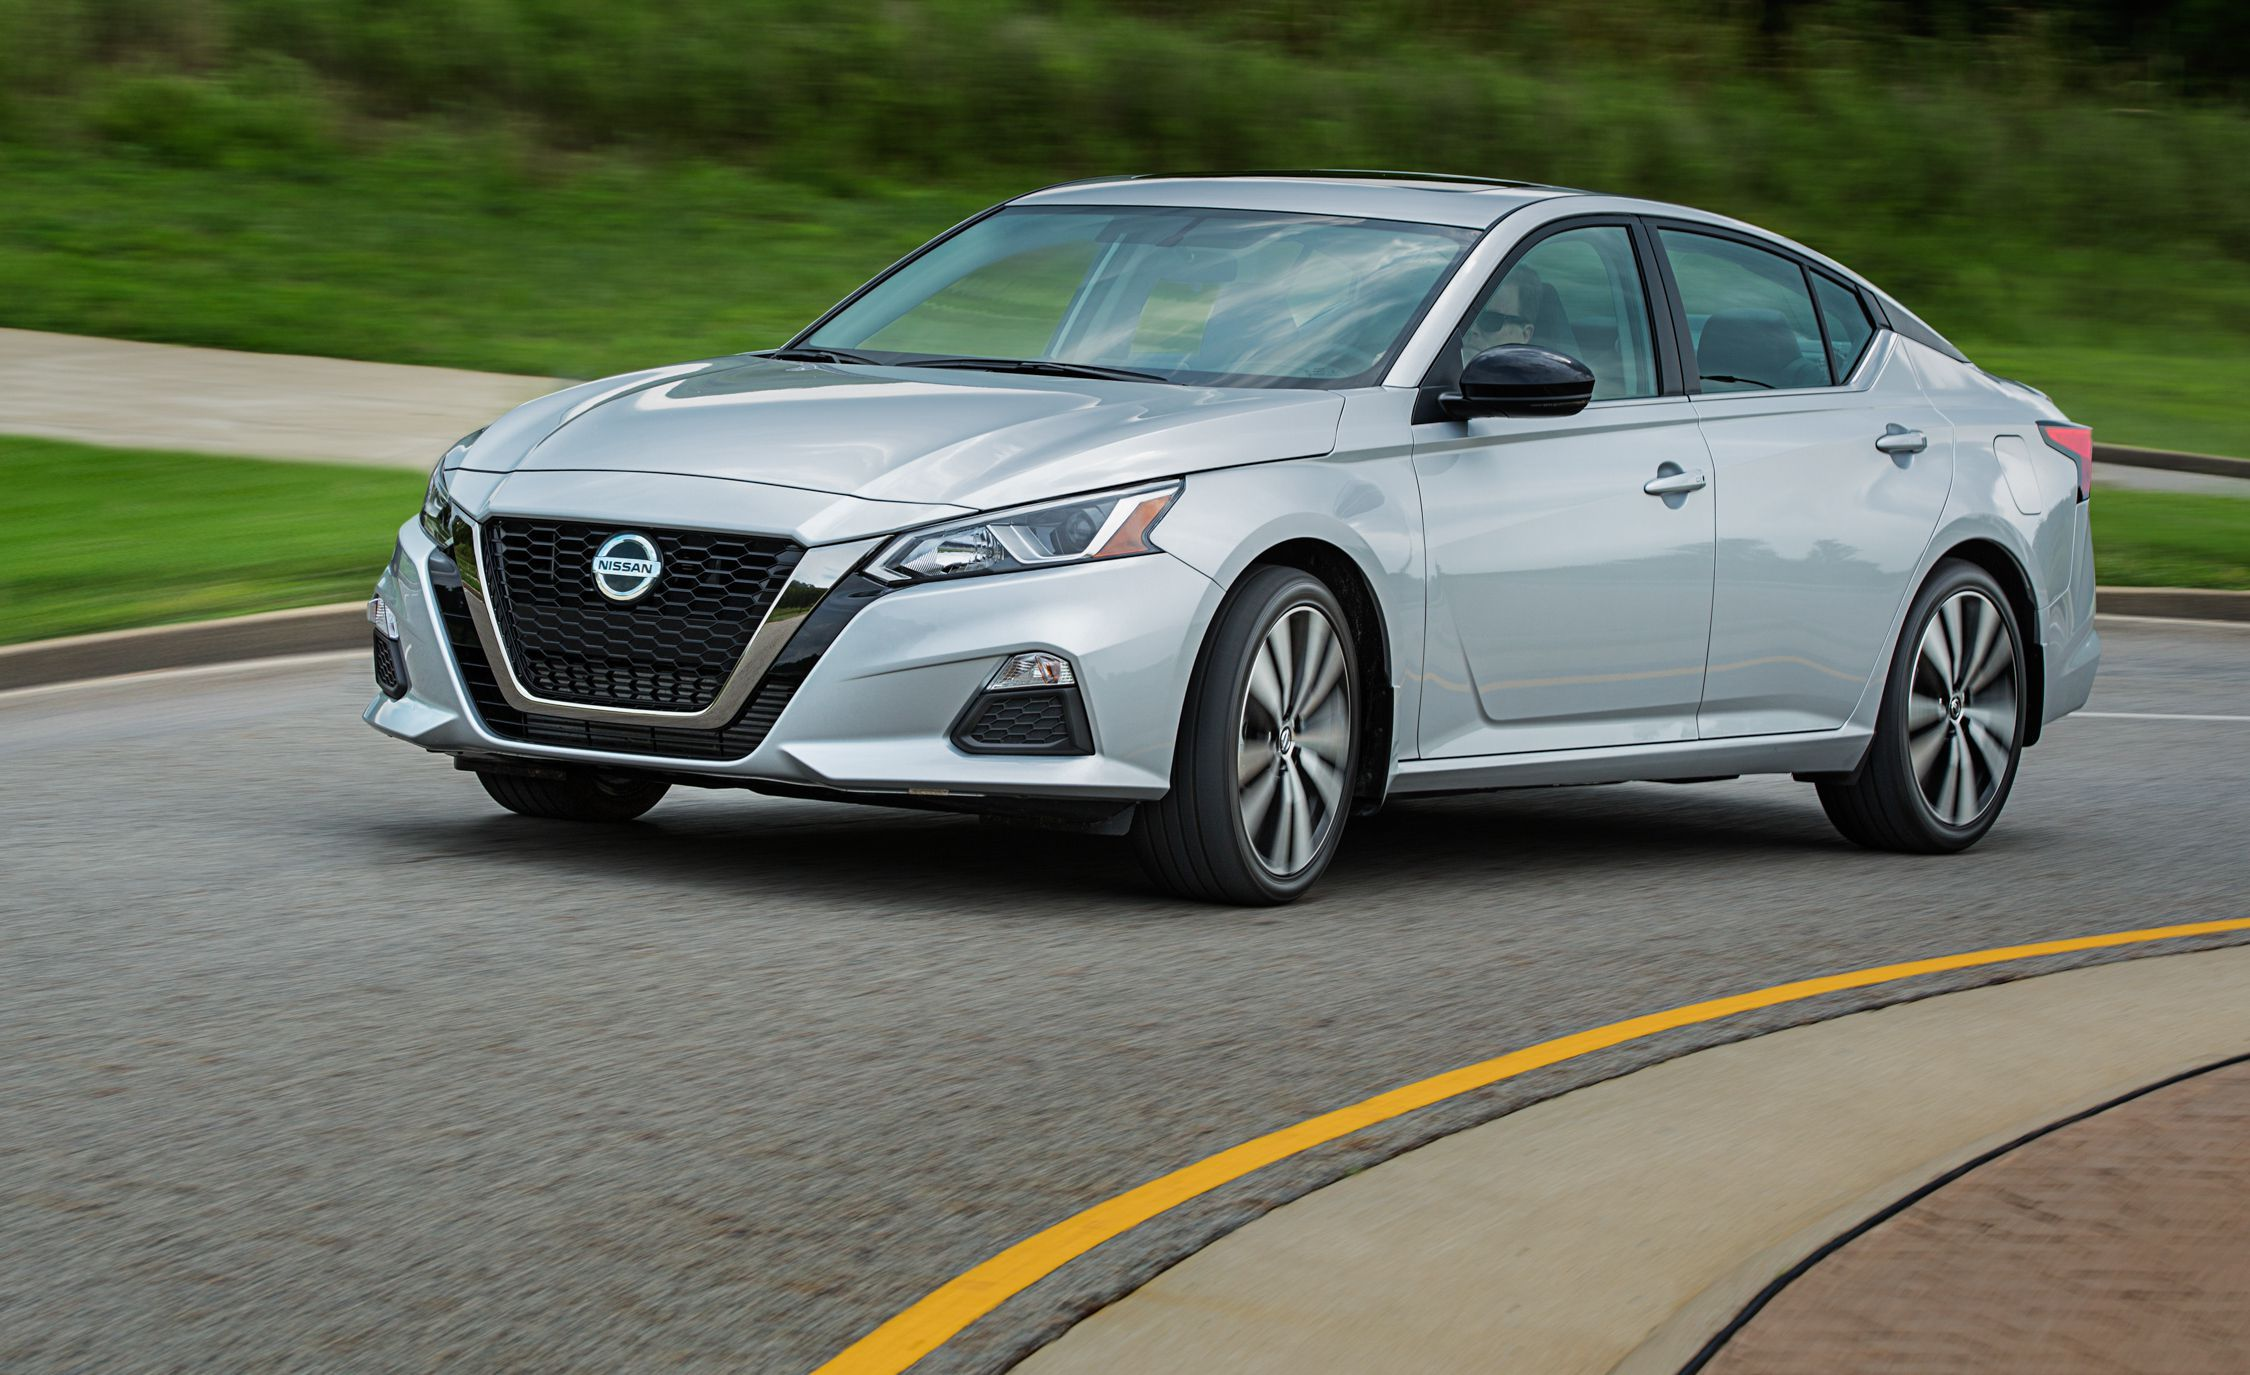 medium resolution of 2020 nissan altima review pricing and specs 2006 nissan altima 2 5 engine diagram as well cadillac cts 2007 engine